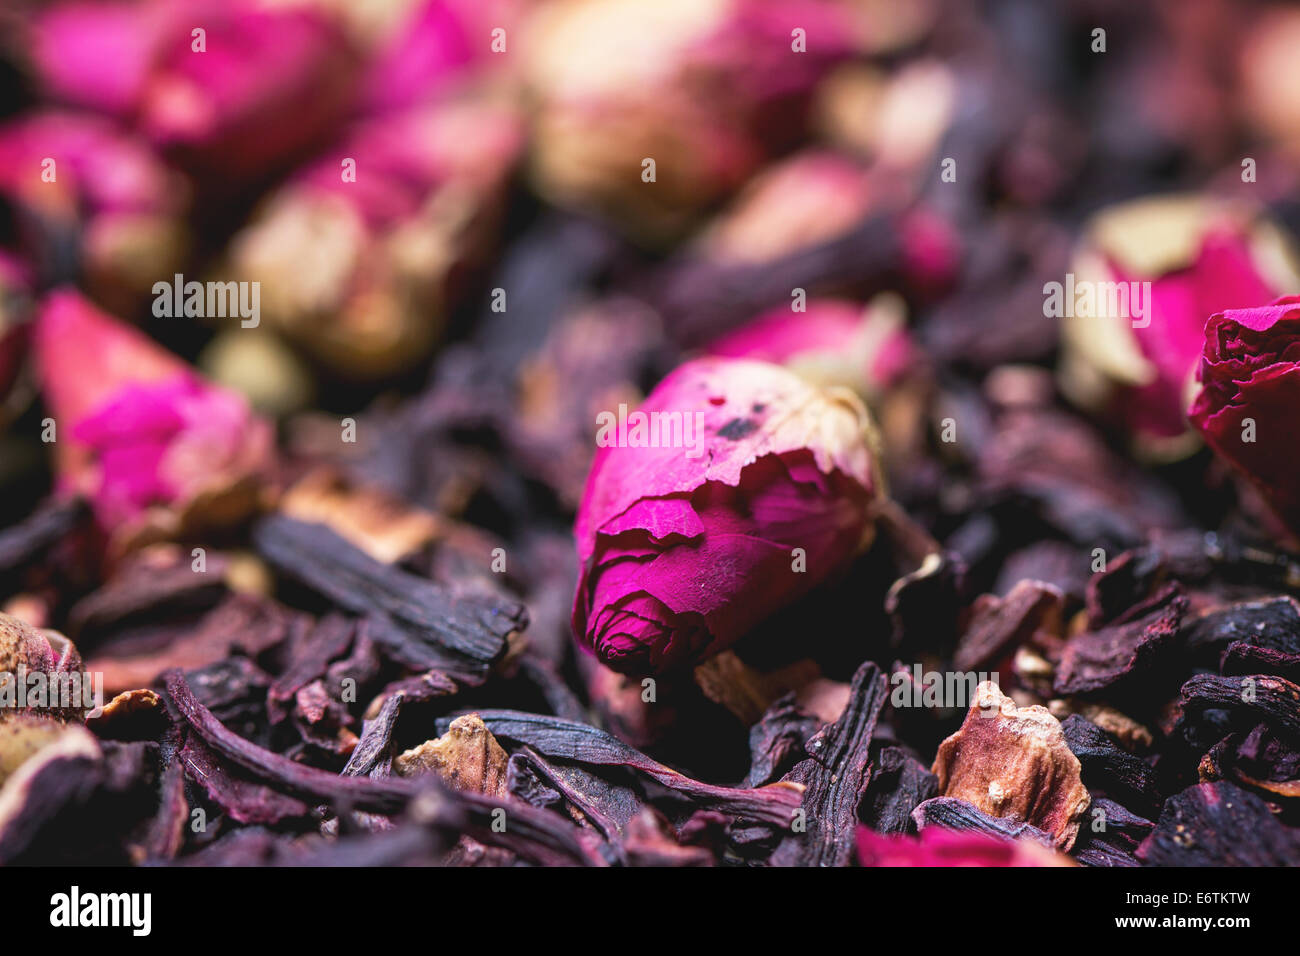 Tea roses and dried hibiscus flower stock photo 73071849 alamy tea roses and dried hibiscus flower izmirmasajfo